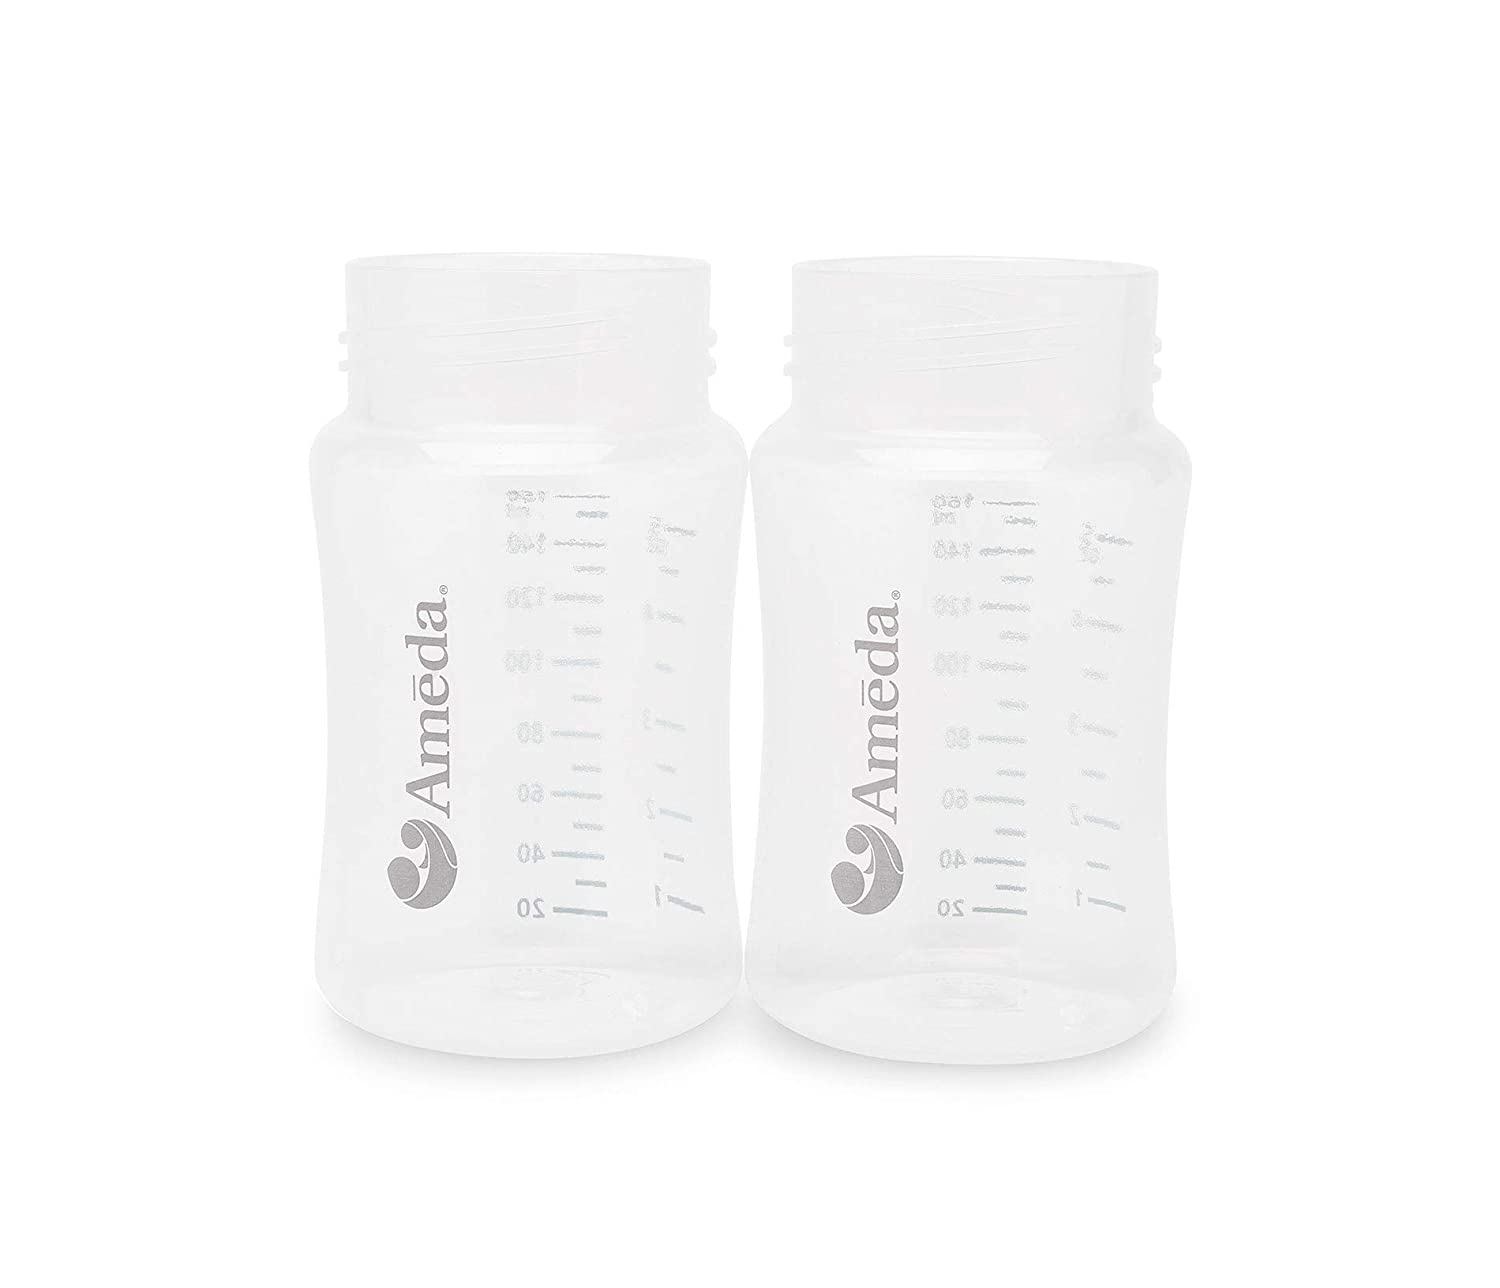 Ameda MYA Breast Pump Replacement Bottles (2); Caps Sold Separately